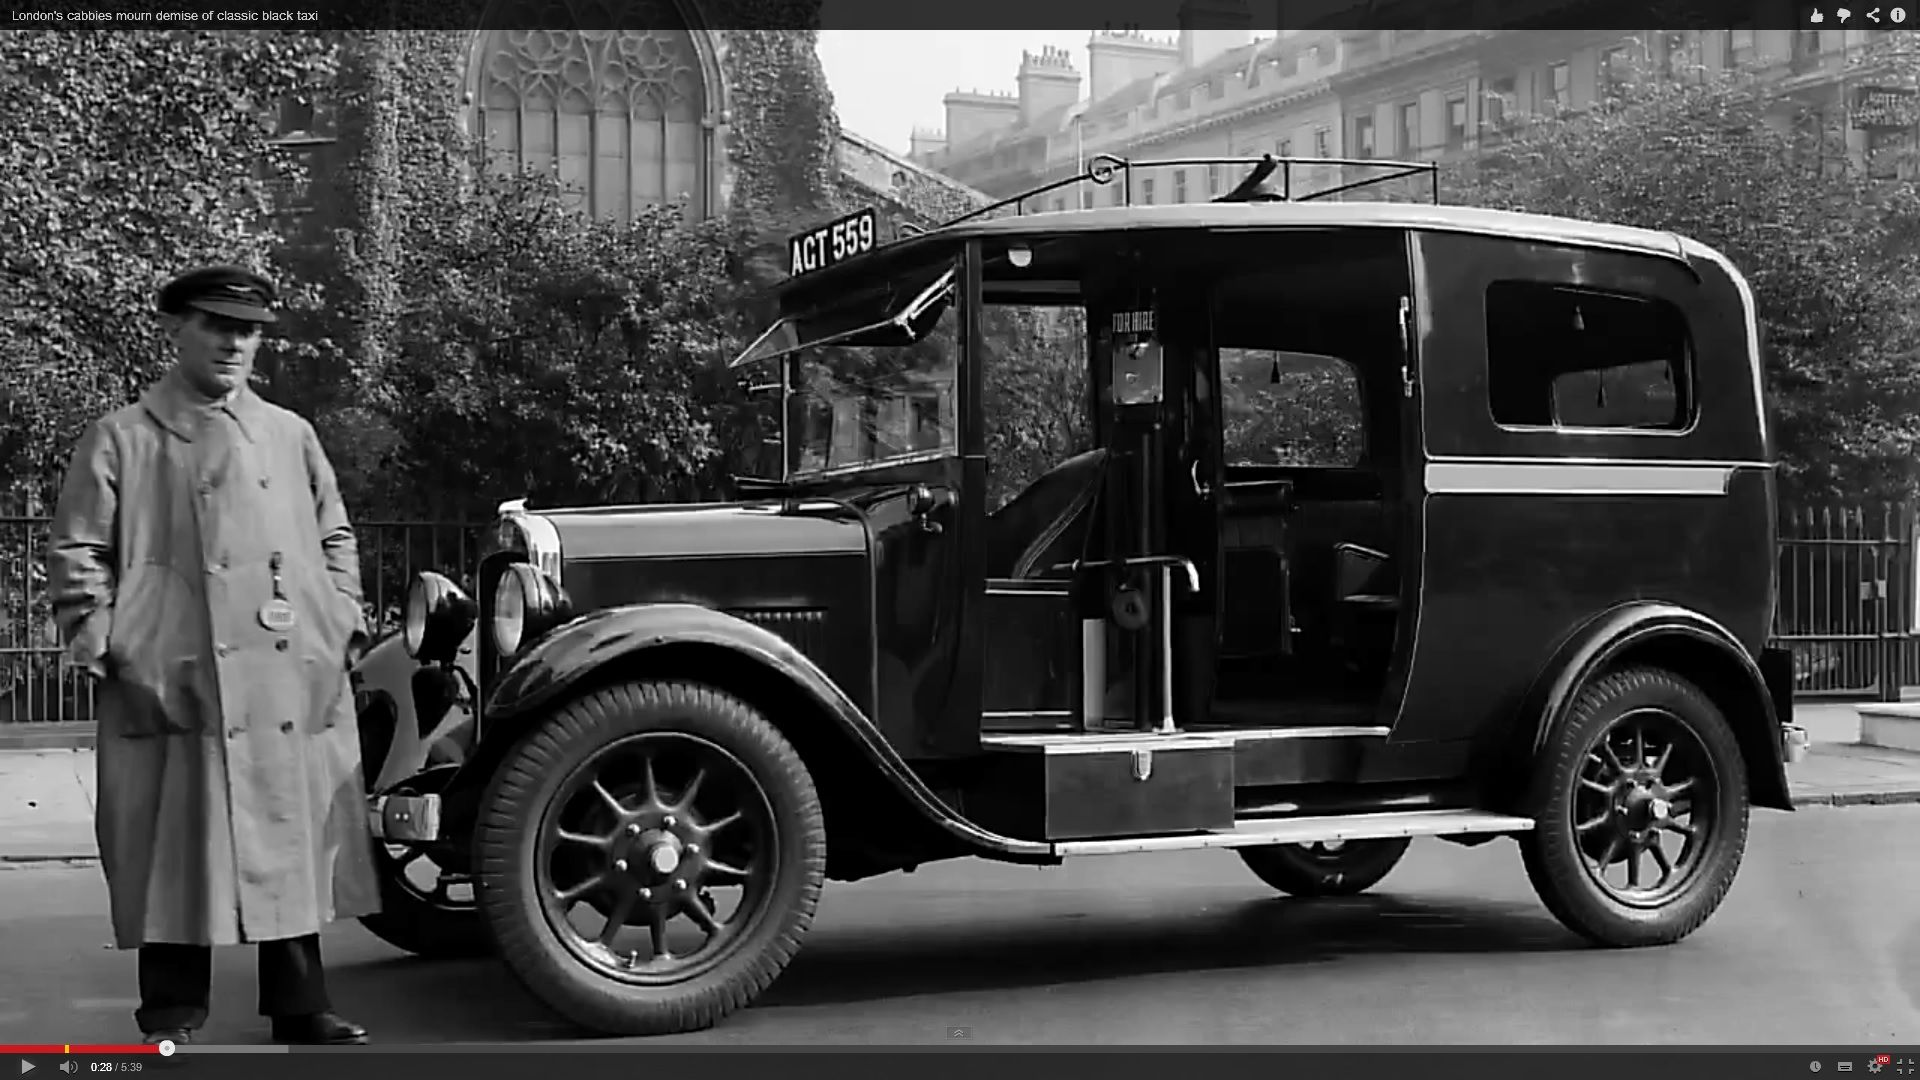 Checker Cab London >> Austin London Taxi with Cape body - c1933 | London cab, London taxi cab, London taxi